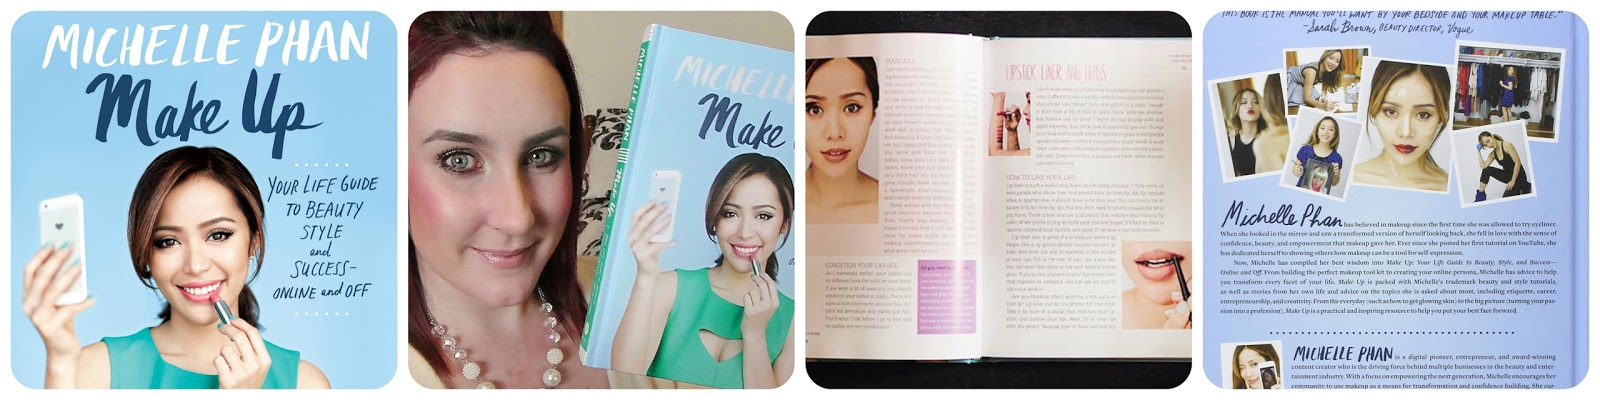 Michelle Phan Book Review - Make Up: Your Life Guide to Beauty, Style, and Success-Online and Off